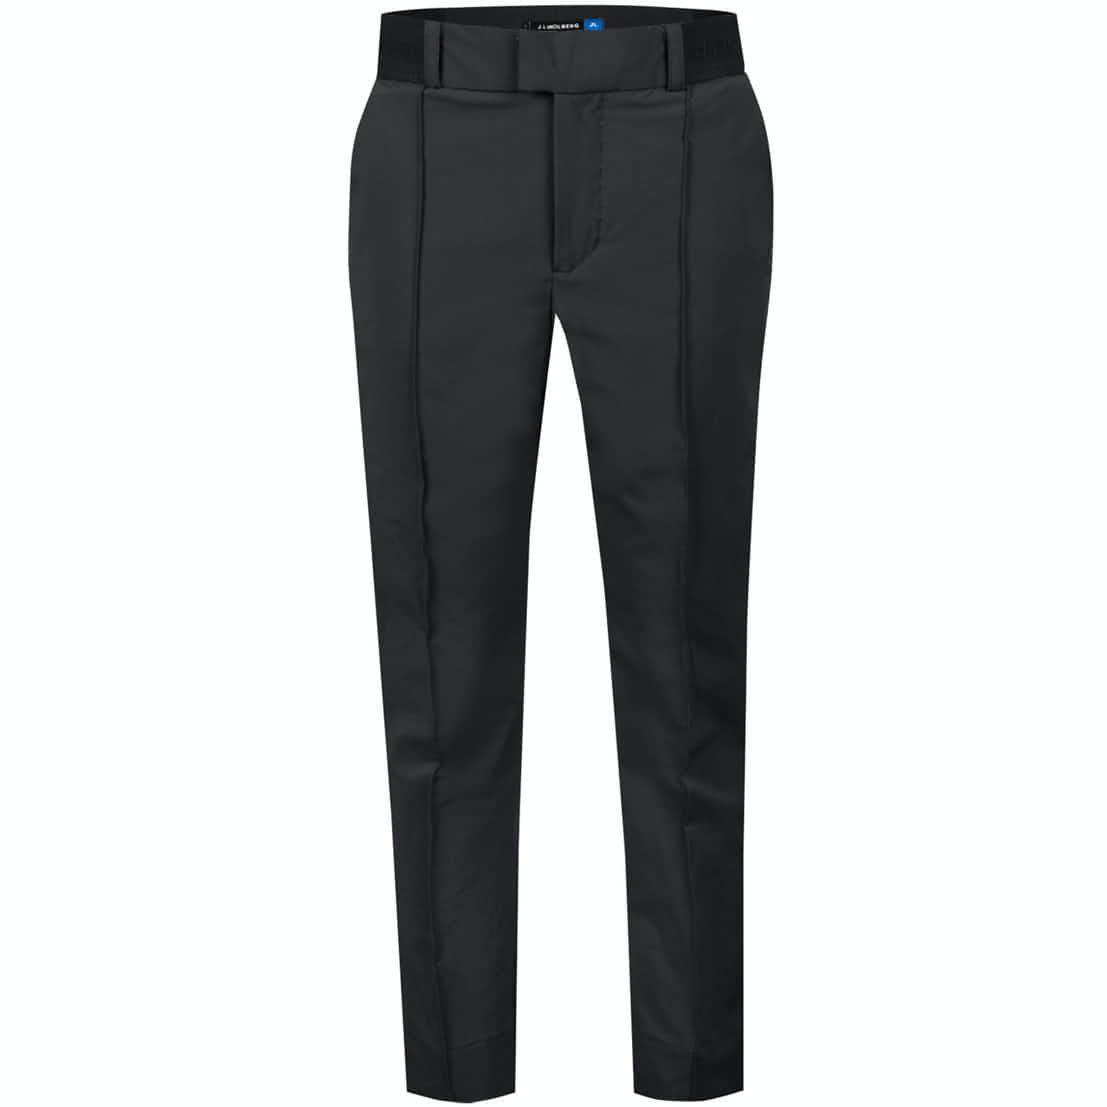 Womens Gio Pants Micro Stretch Black - SS19